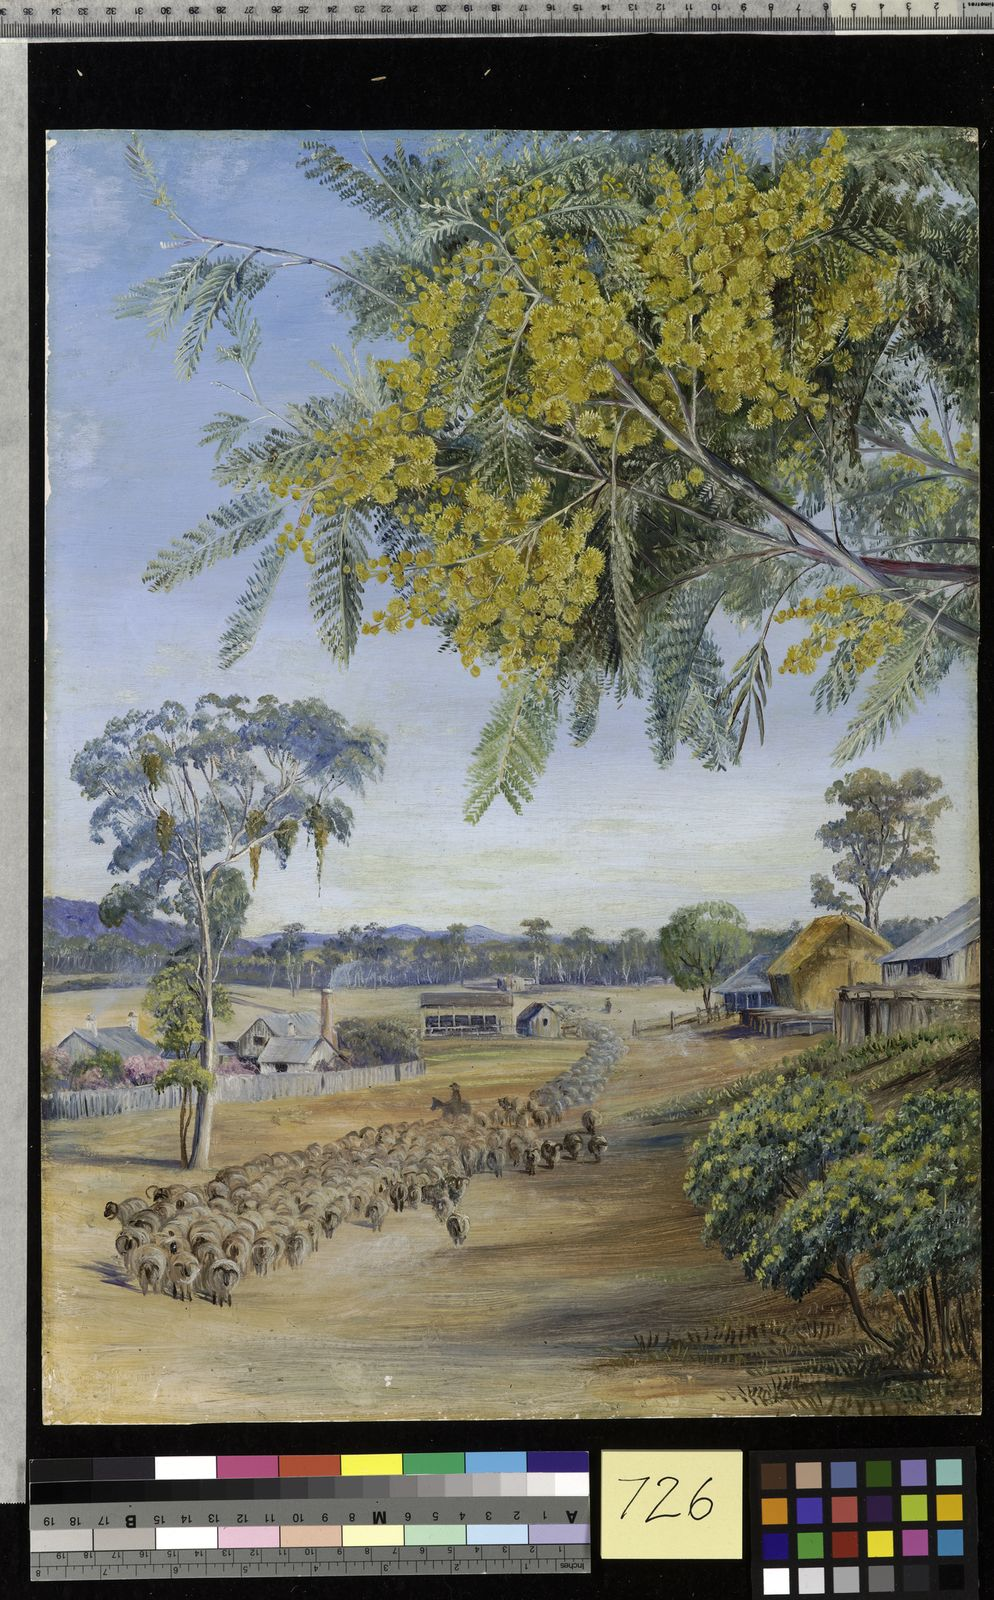 Acacia Dealbata Link Plants Of The World Online Kew Science